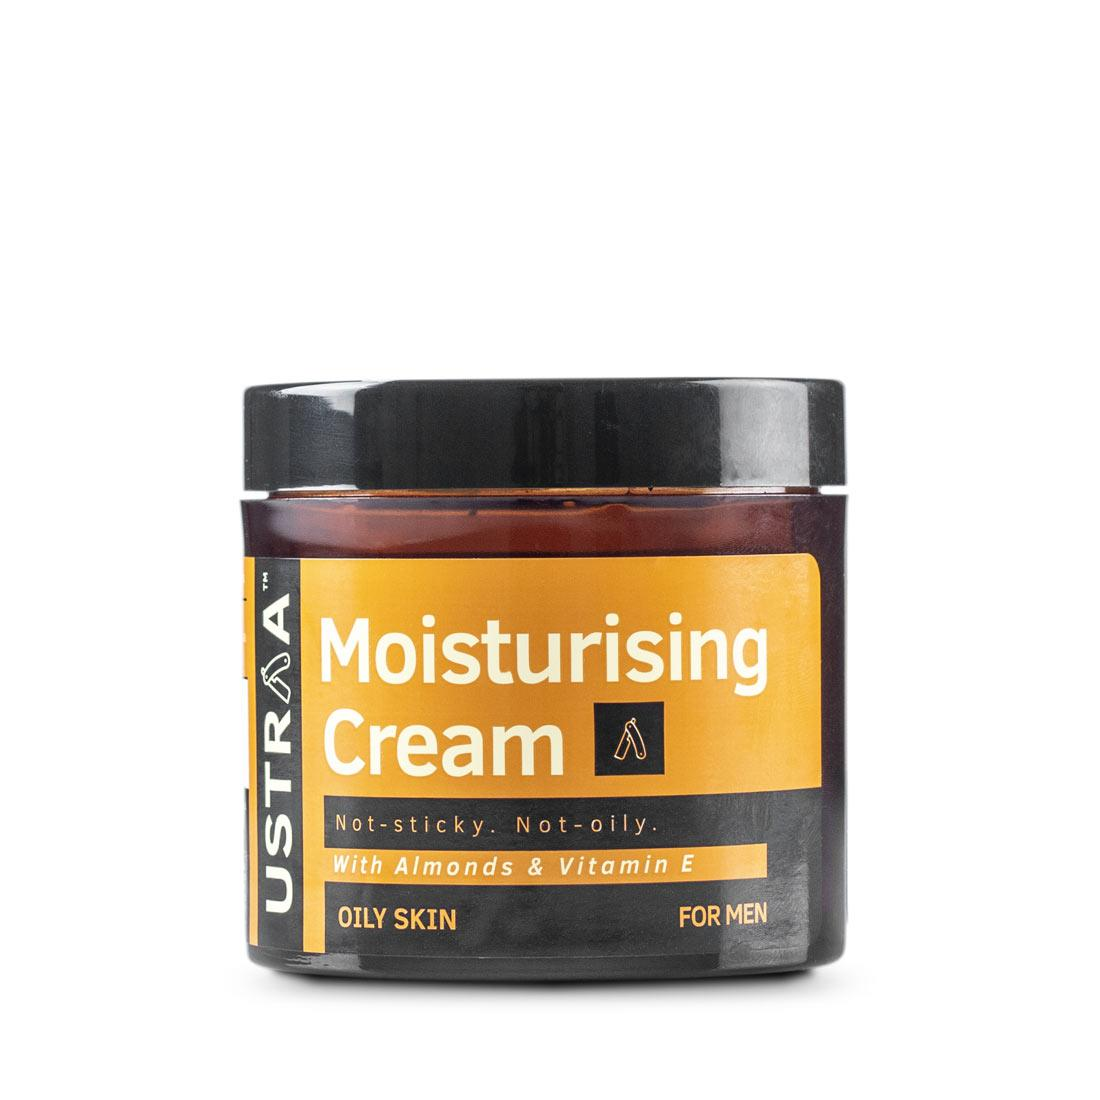 Ustraa Moisturising Cream for Oily Skin with Shea Butter and Olive Oil - Keeps Skin Healthy and Moisturized Without the Stickiness- 100g